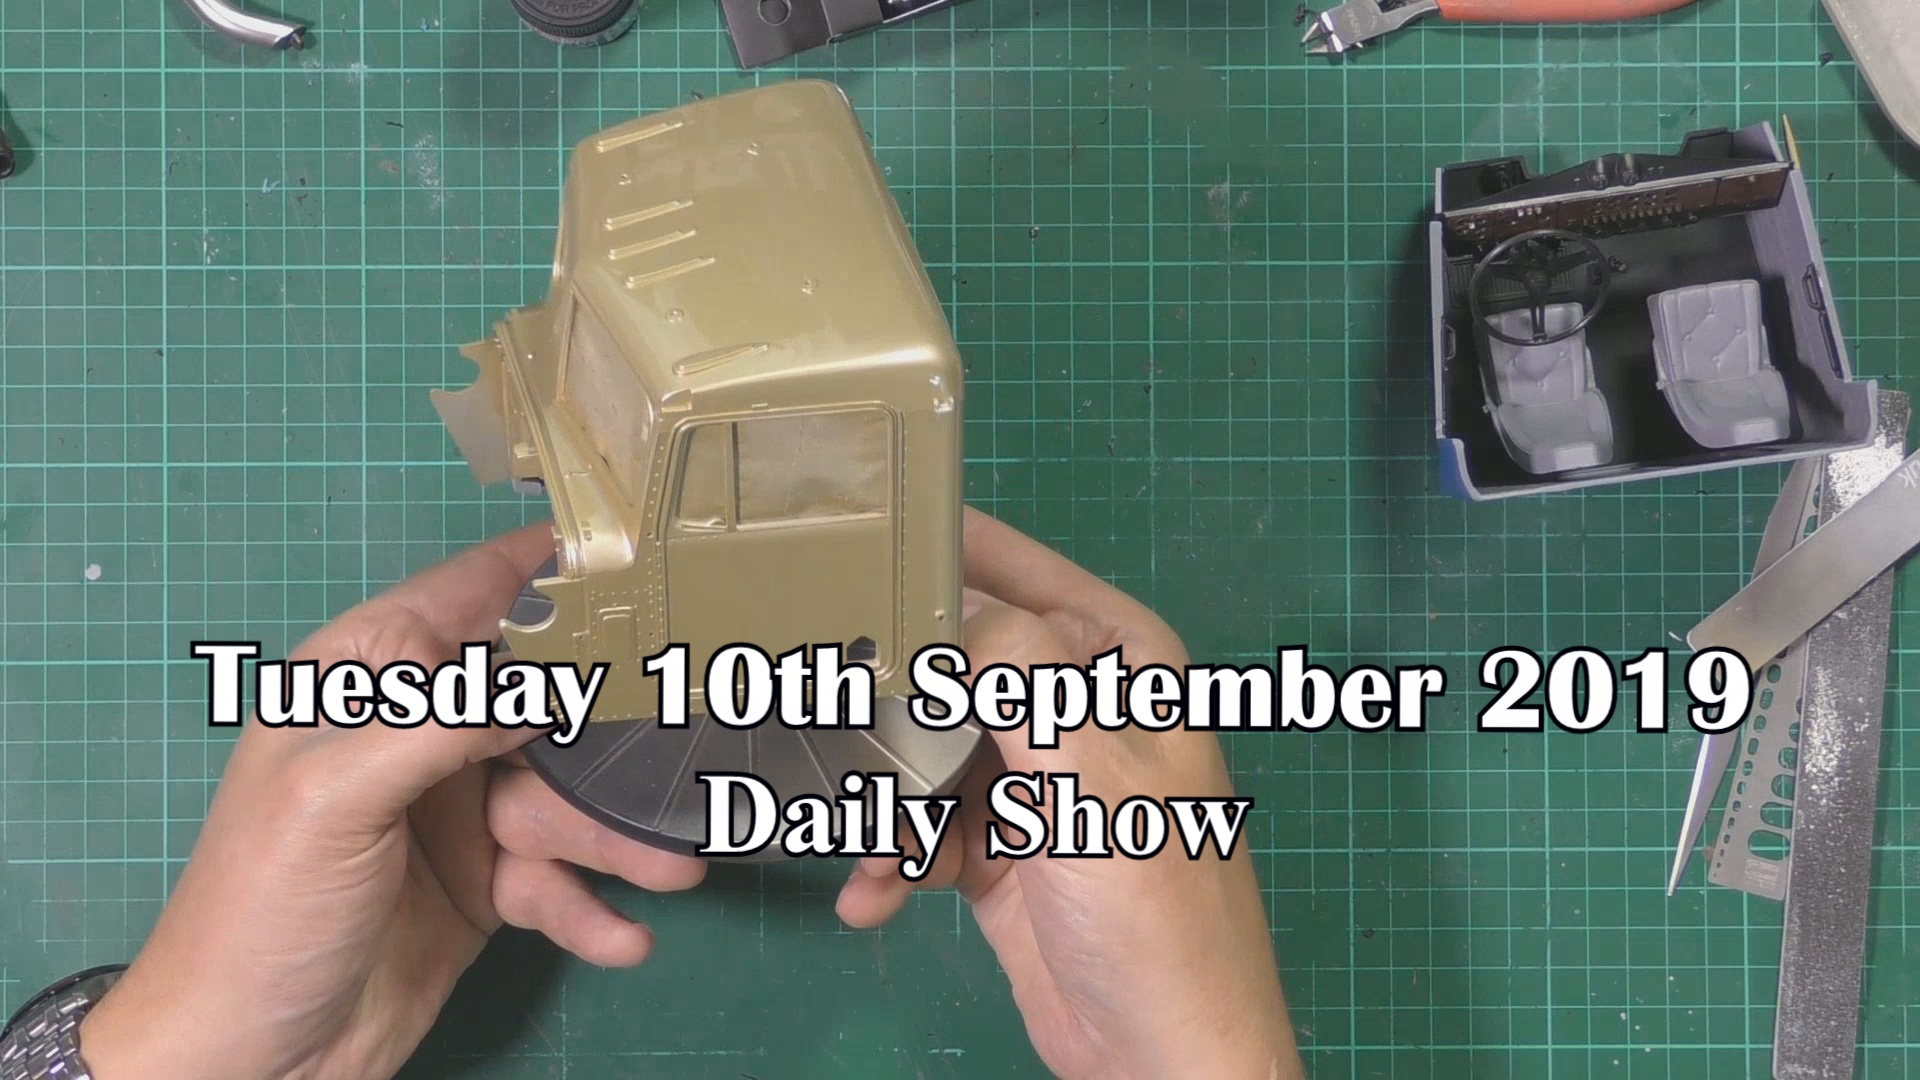 Daily Show Tuesday 10th September 2019